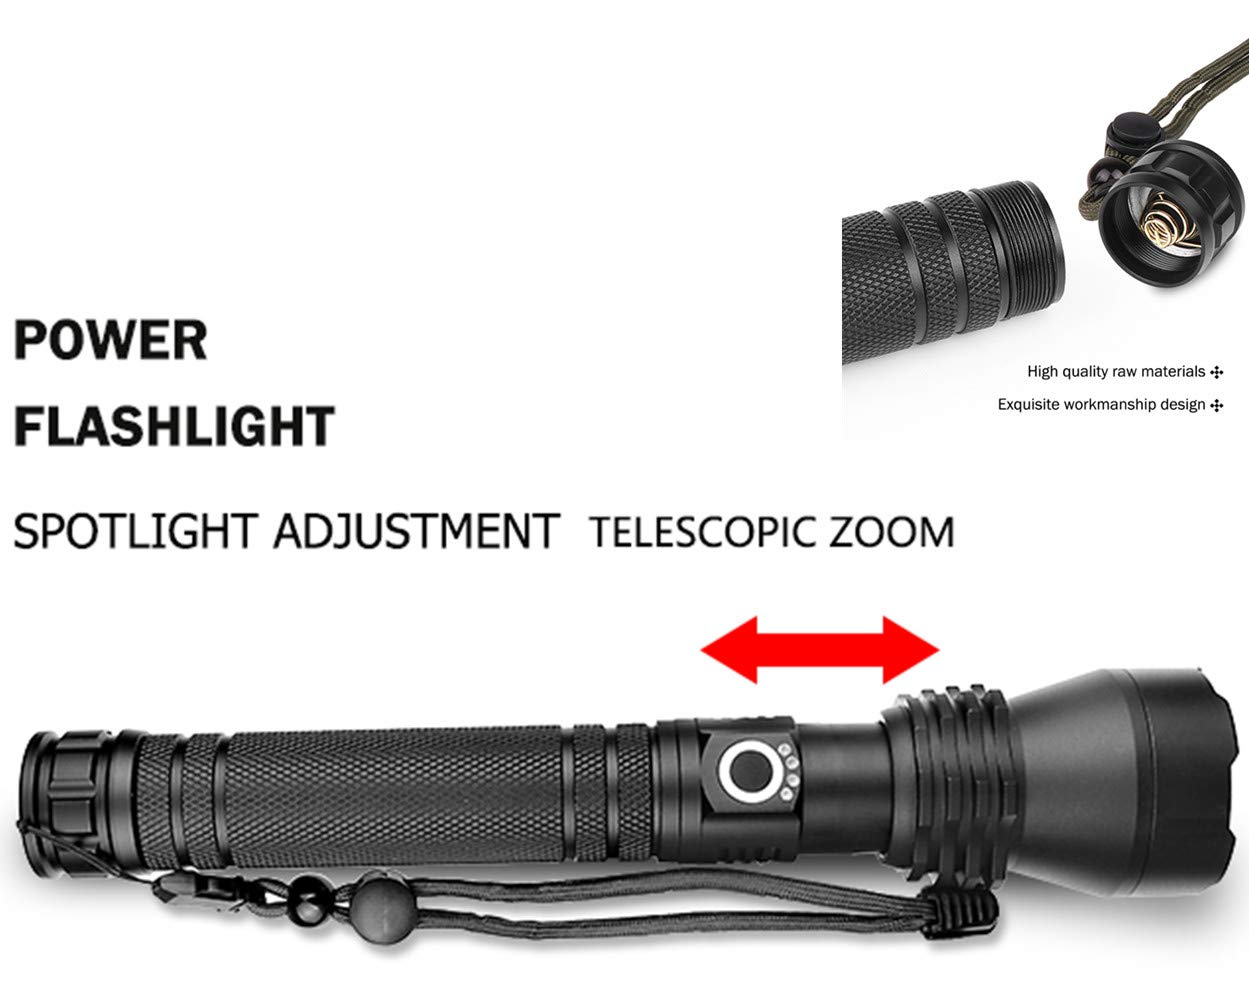 LED XHP50 Highlight Taschenlampe Zoomable Aluminium-Legierung Taschenlampe mit Power-Display